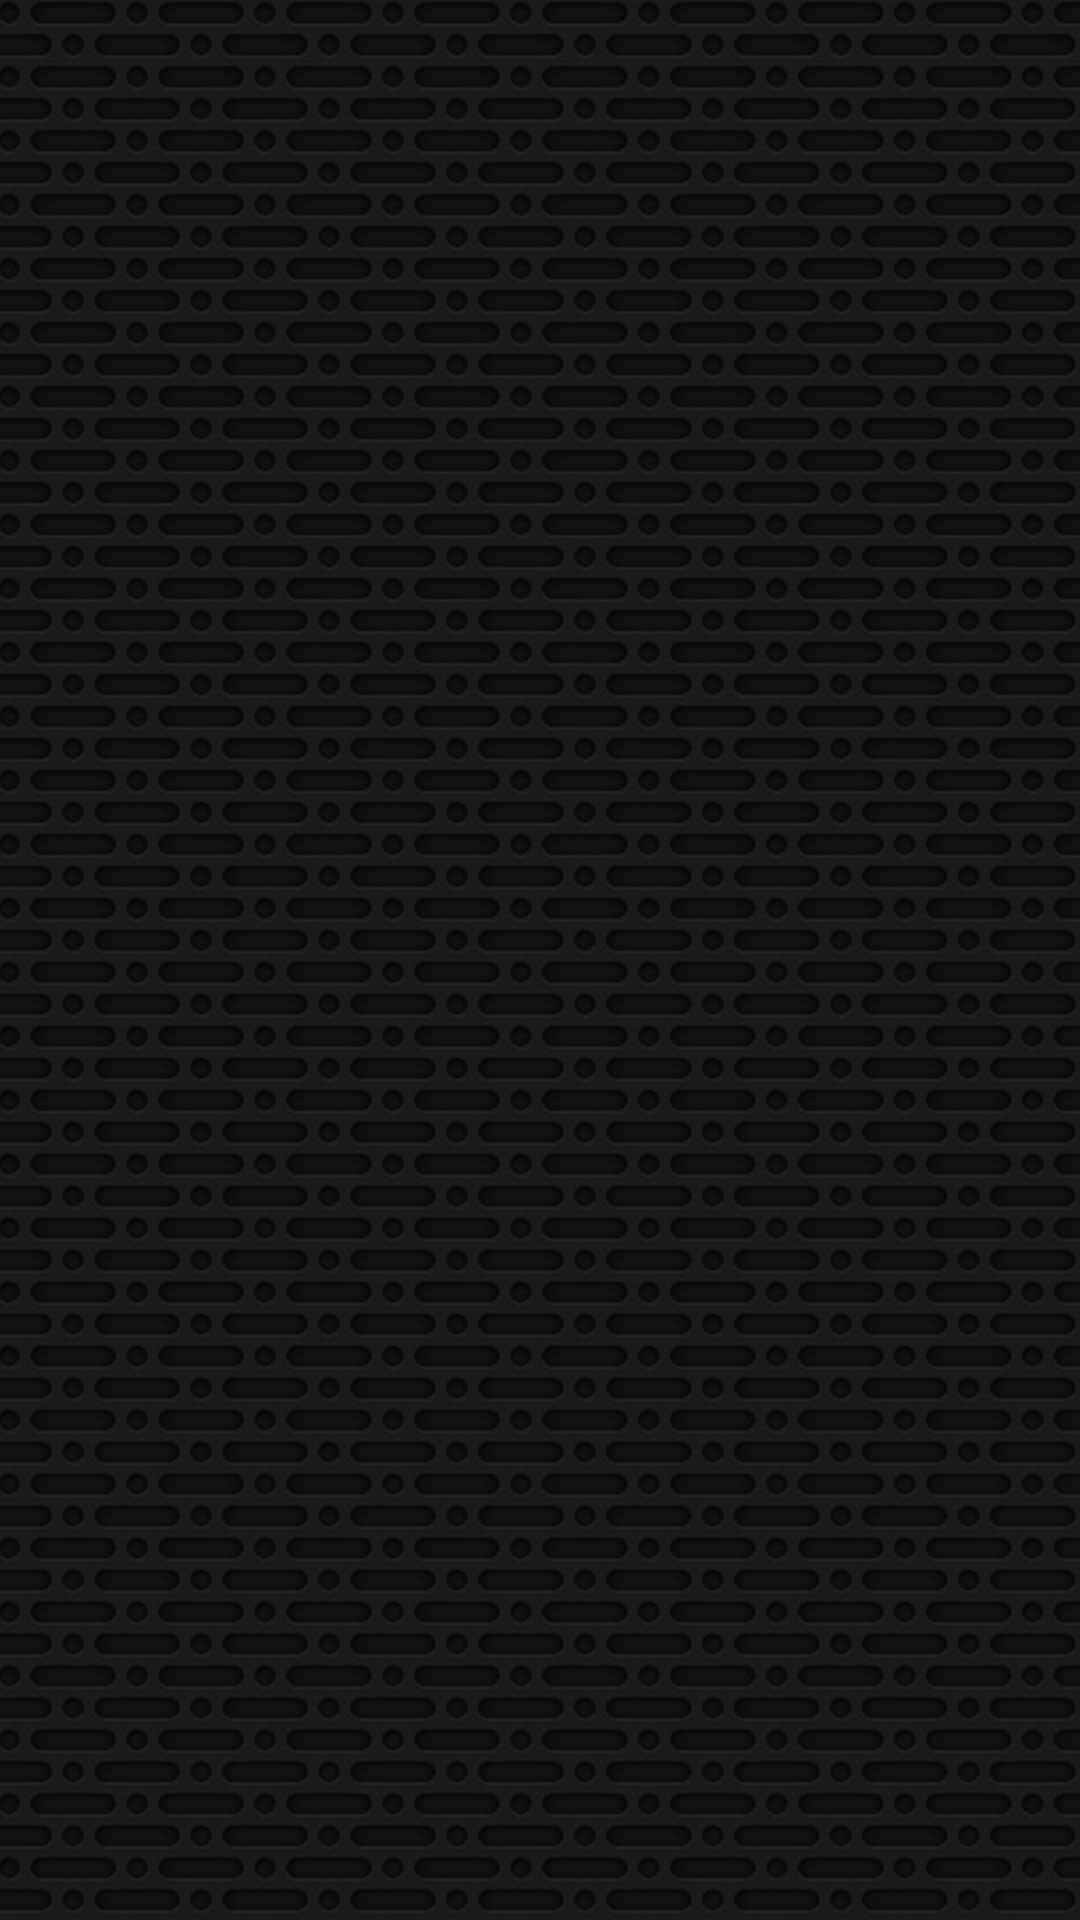 Grid Iphone Wallpapers Top Free Grid Iphone Backgrounds